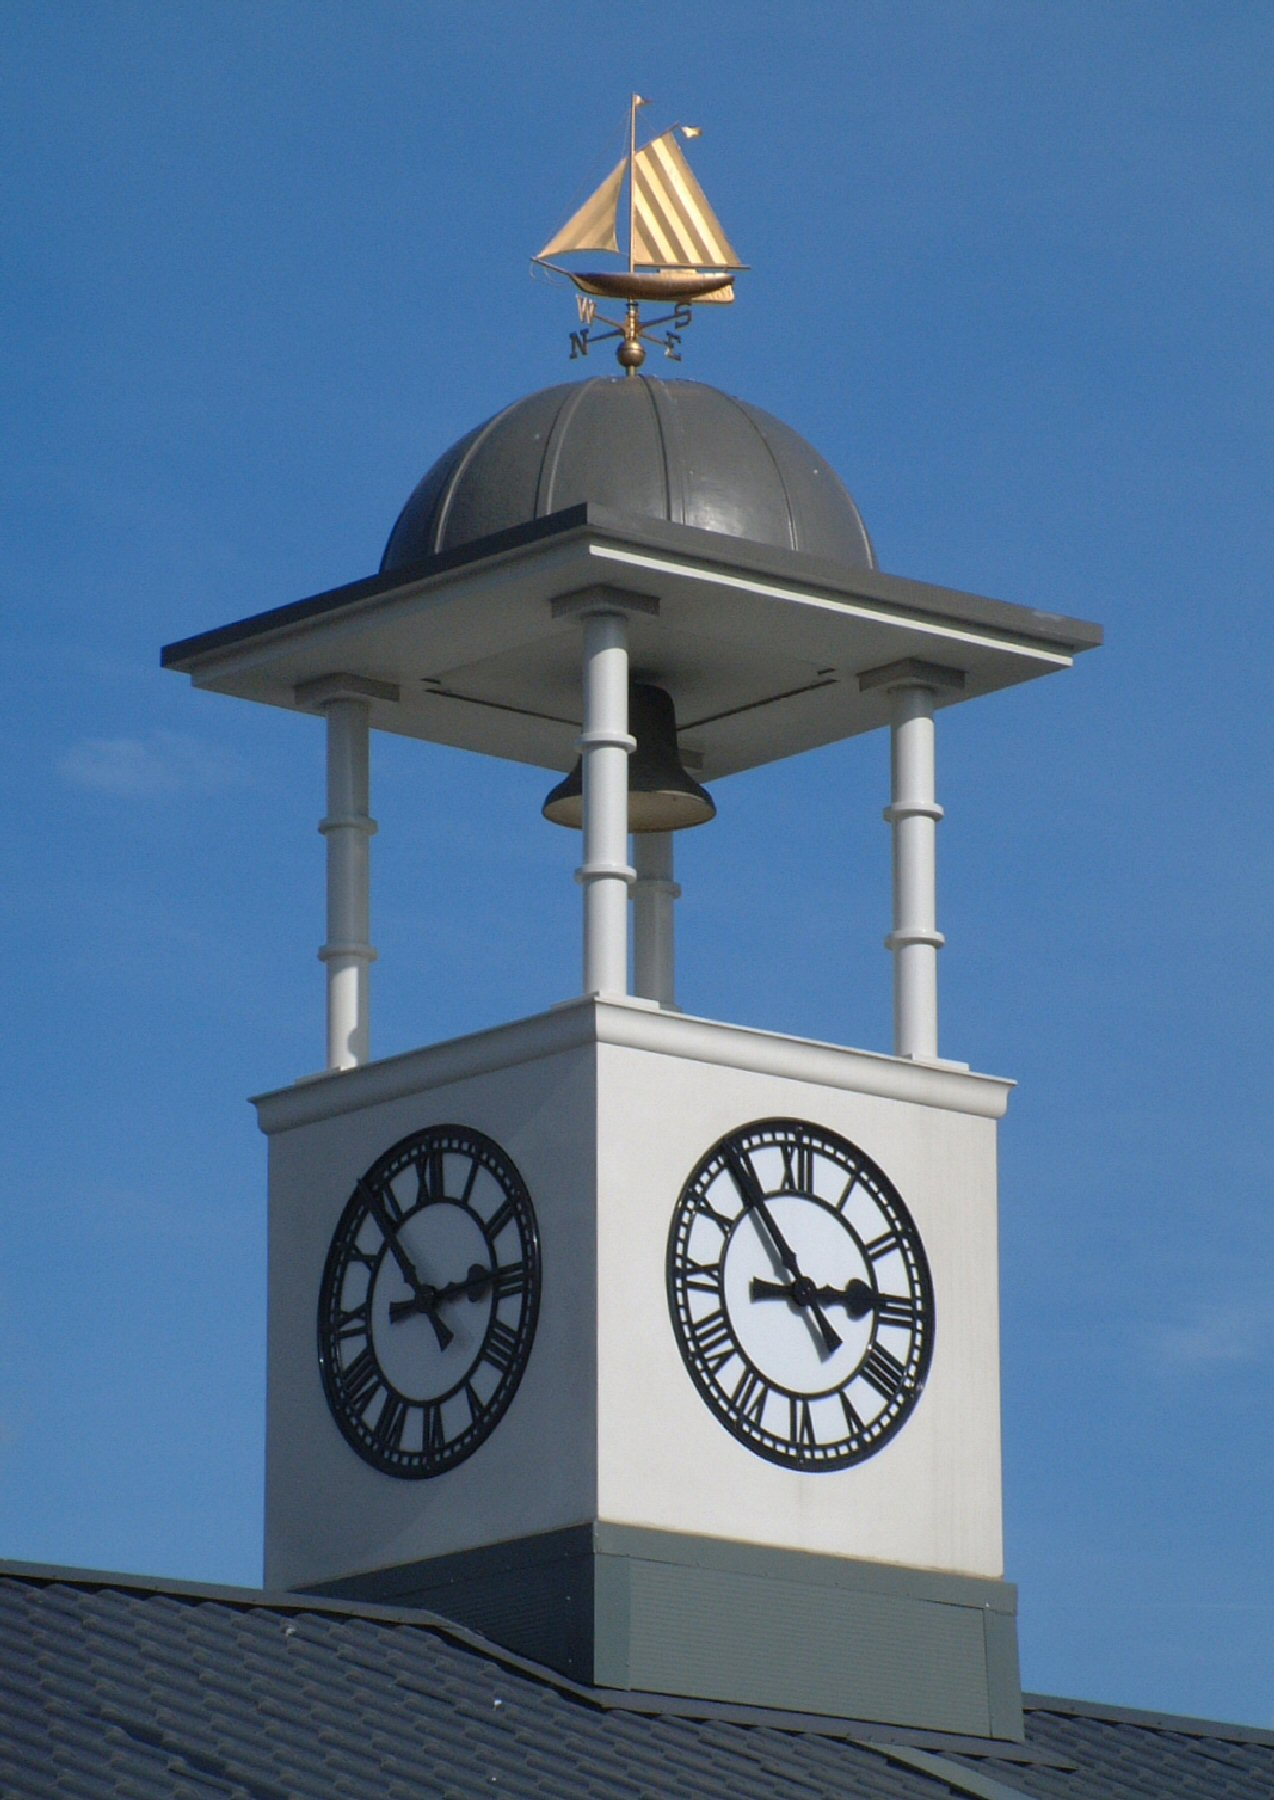 Large clock towers for shops